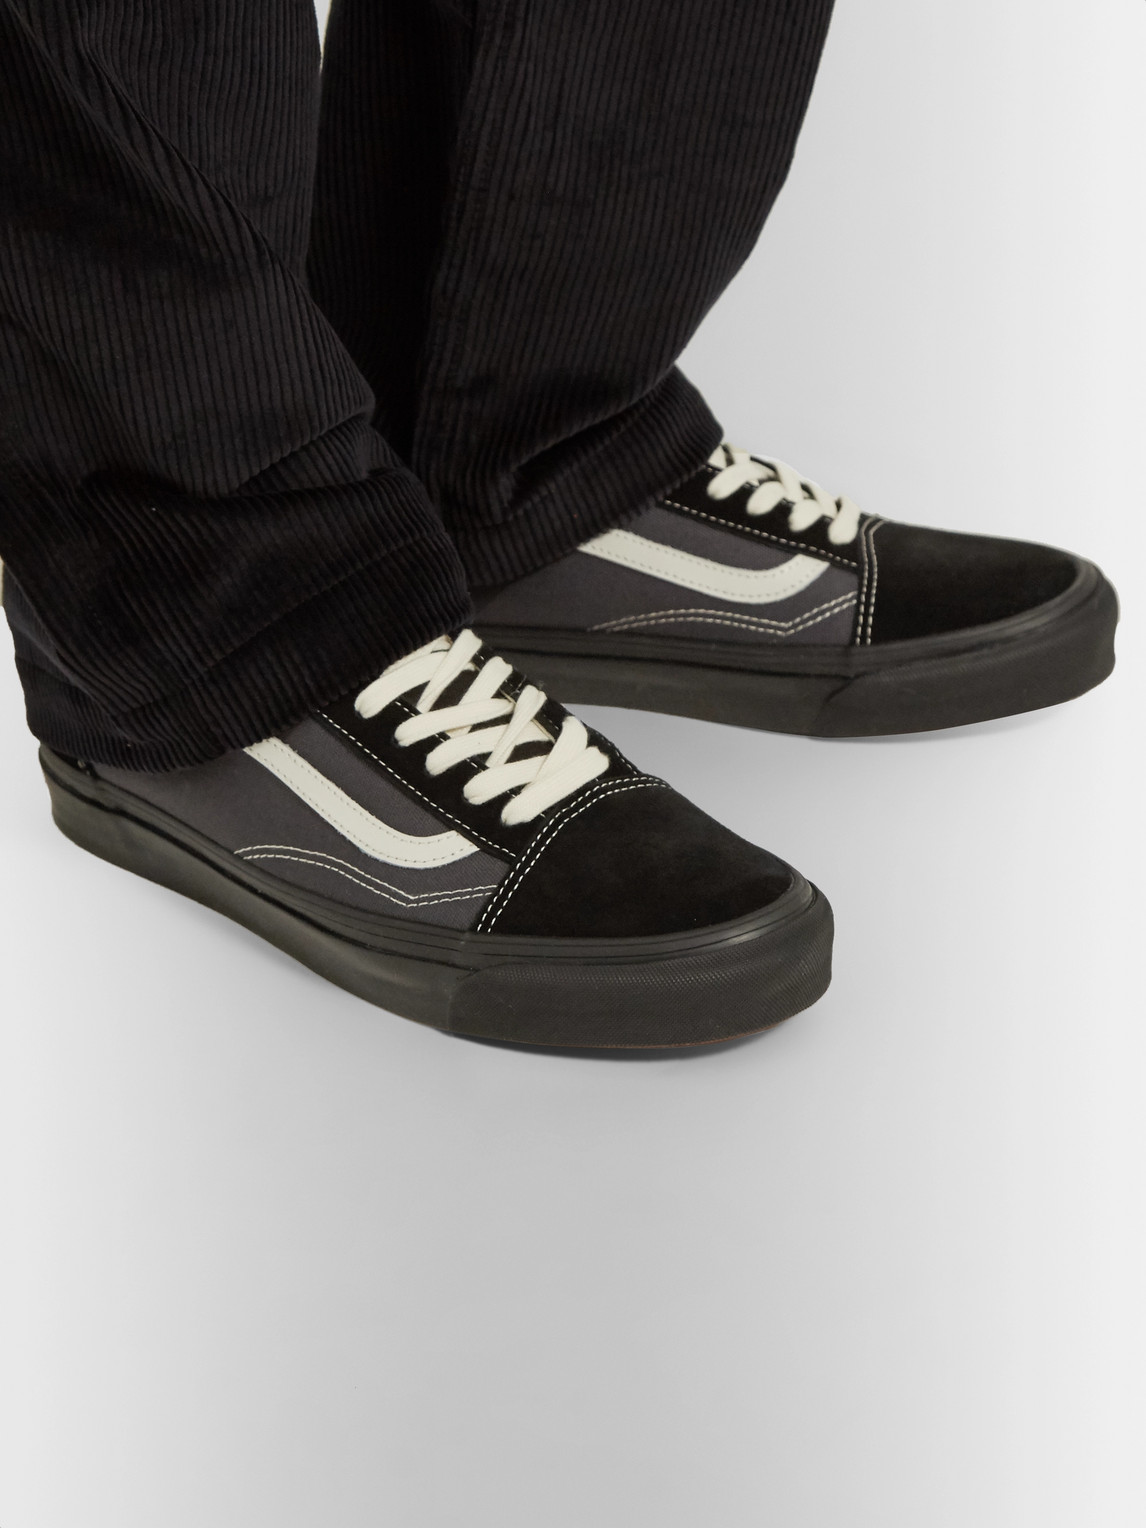 Vans Sneakers UA OG OLD SKOOL LX LEATHER-TRIMMED CANVAS AND SUEDE SNEAKERS